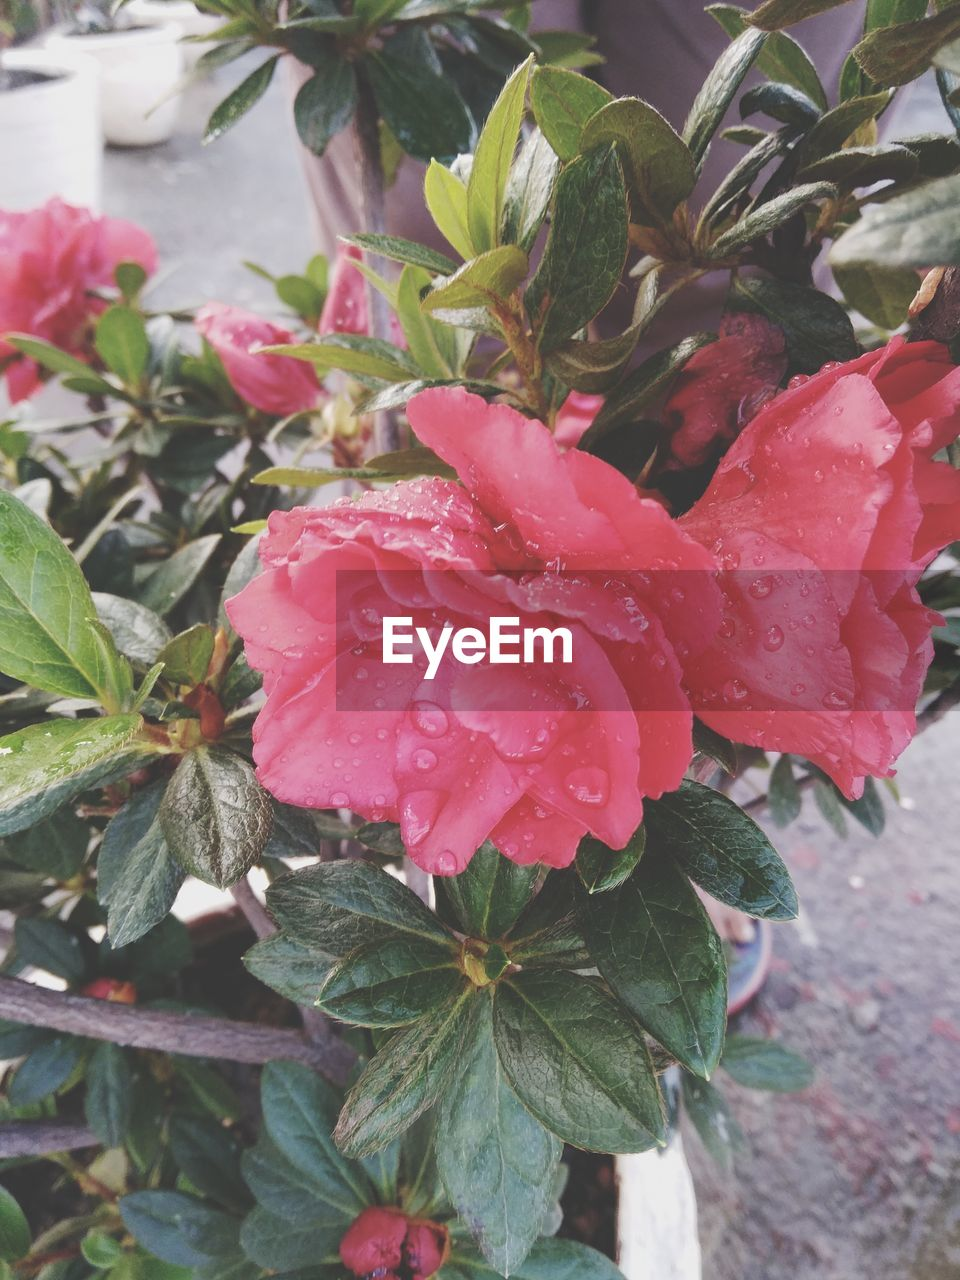 plant, beauty in nature, flowering plant, growth, flower, freshness, plant part, leaf, petal, drop, close-up, wet, fragility, pink color, water, vulnerability, flower head, inflorescence, day, no people, outdoors, rain, rainy season, pollen, dew, raindrop, purity